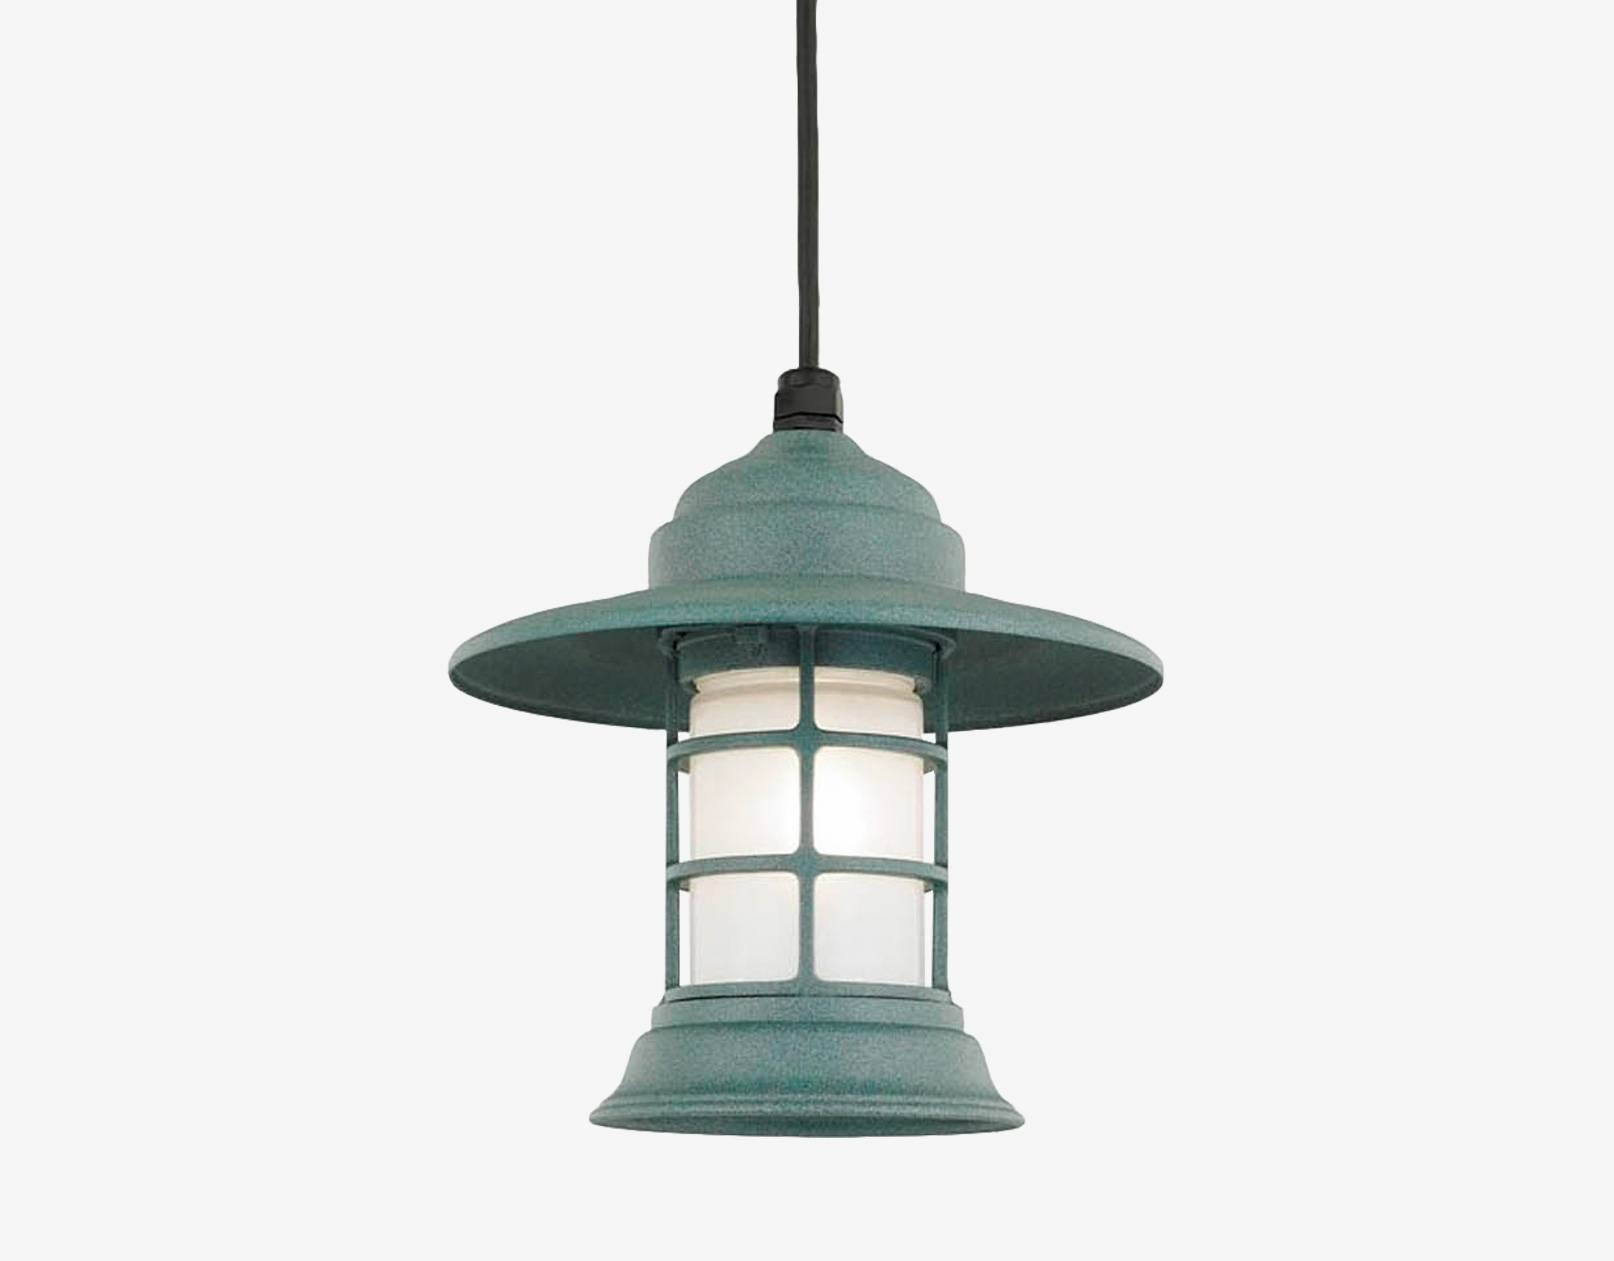 Saucer Jelly Jar Shade: Cottage-Style Lighting With An Oceanic Splash throughout Cottage Style Pendant Lights (Image 15 of 15)